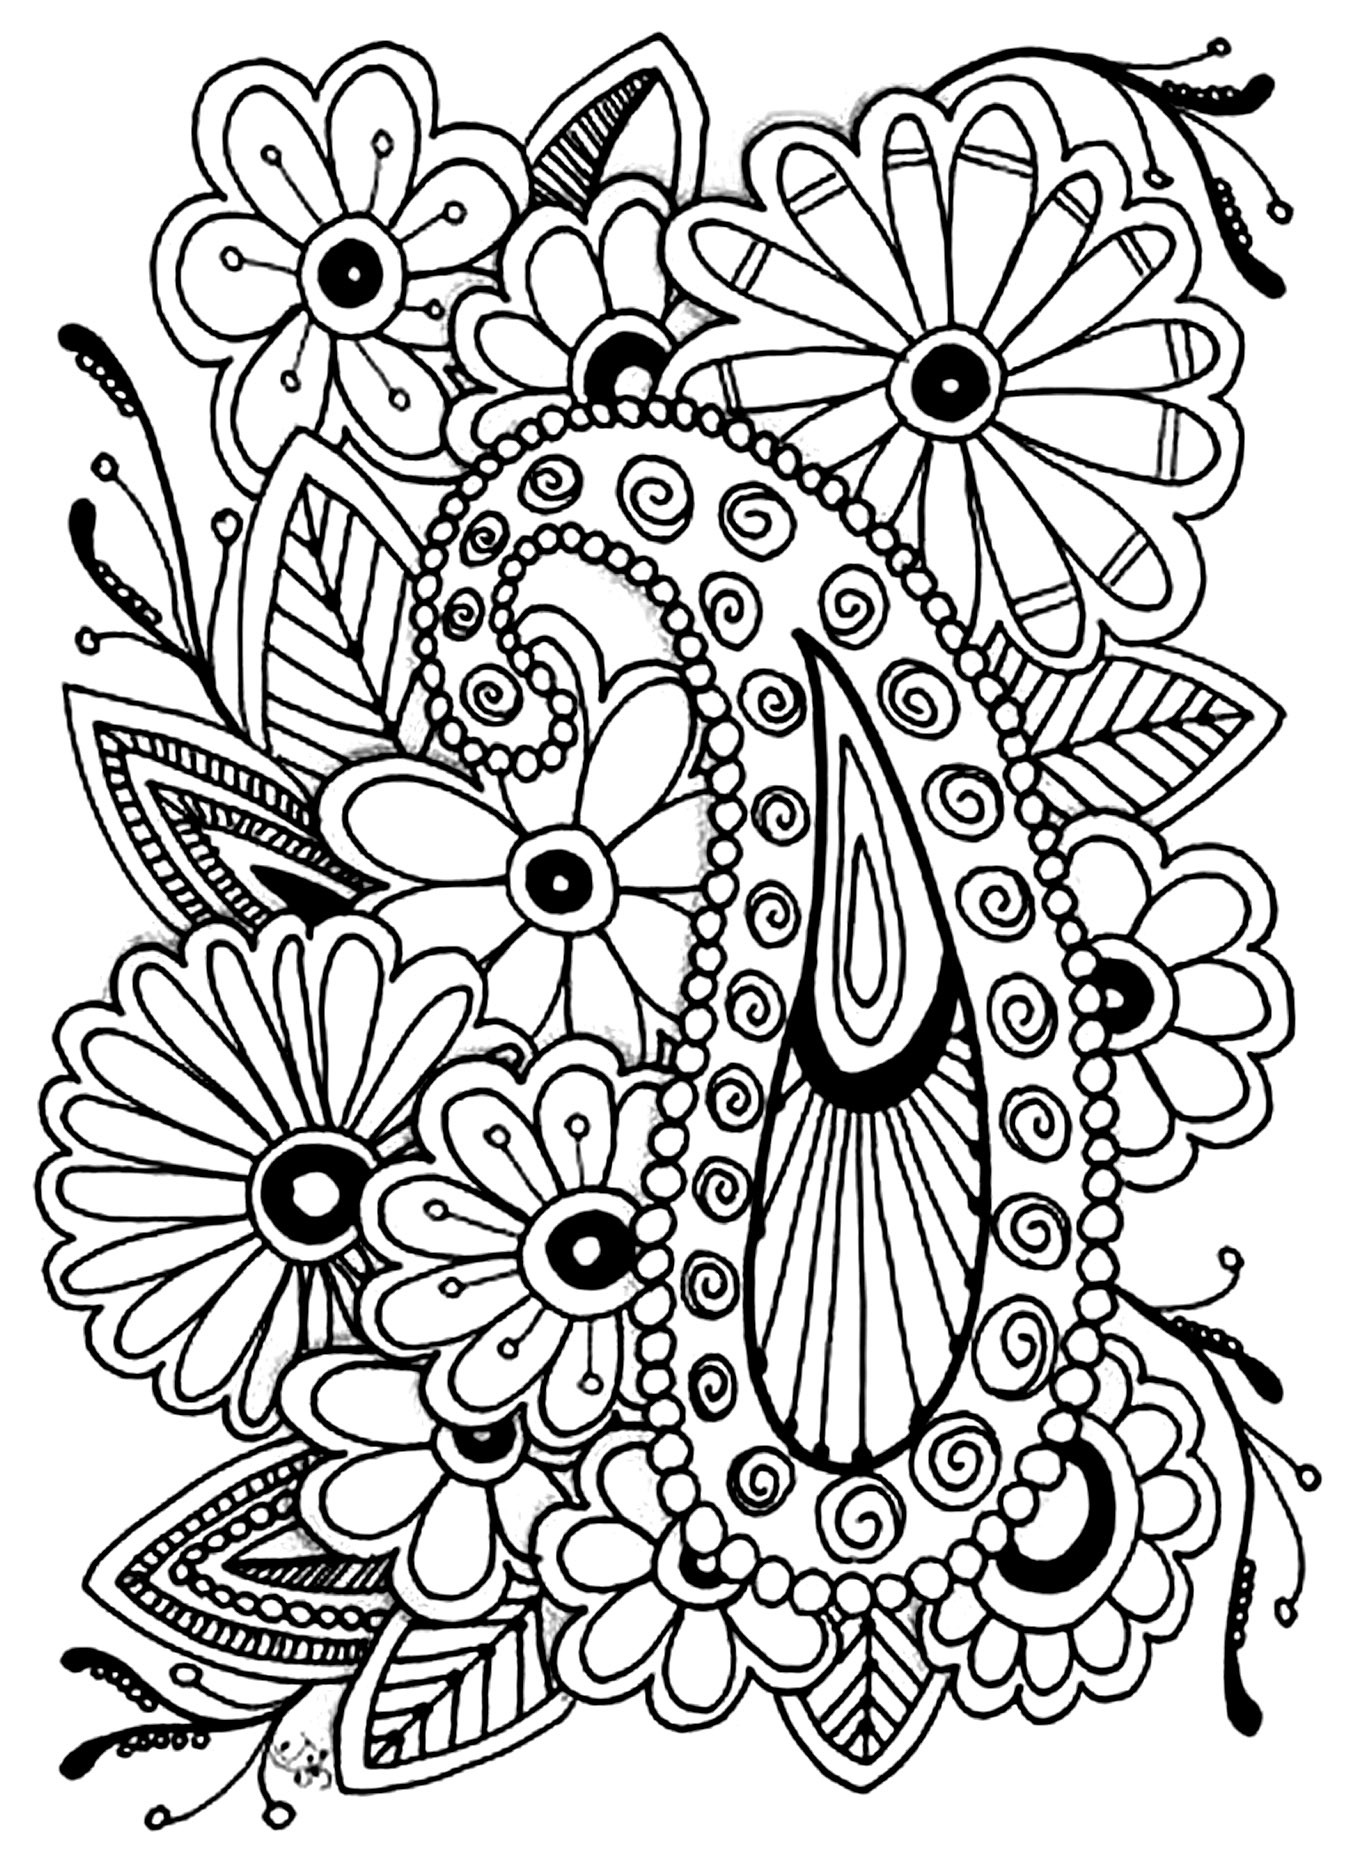 flower pattern coloring pages flower coloring pages part 3 flower pattern pages coloring